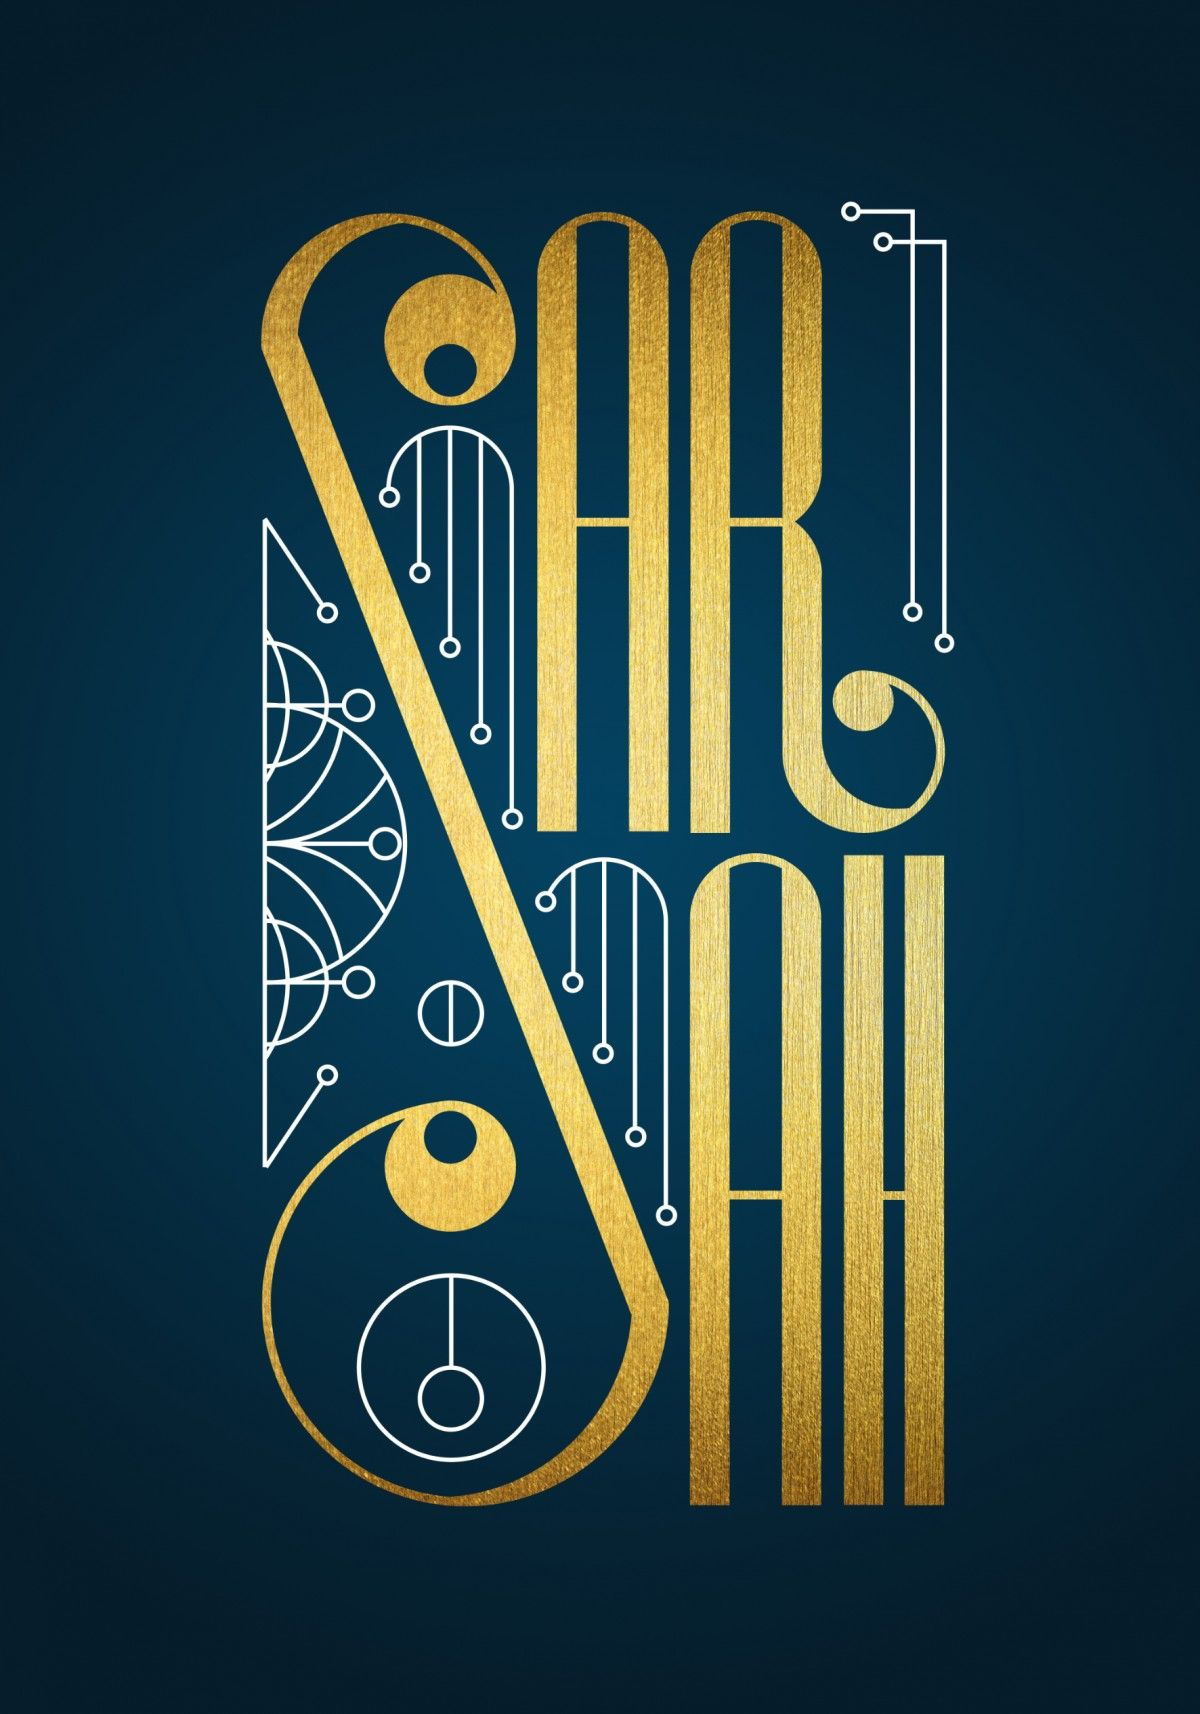 Sarah lettering by timone